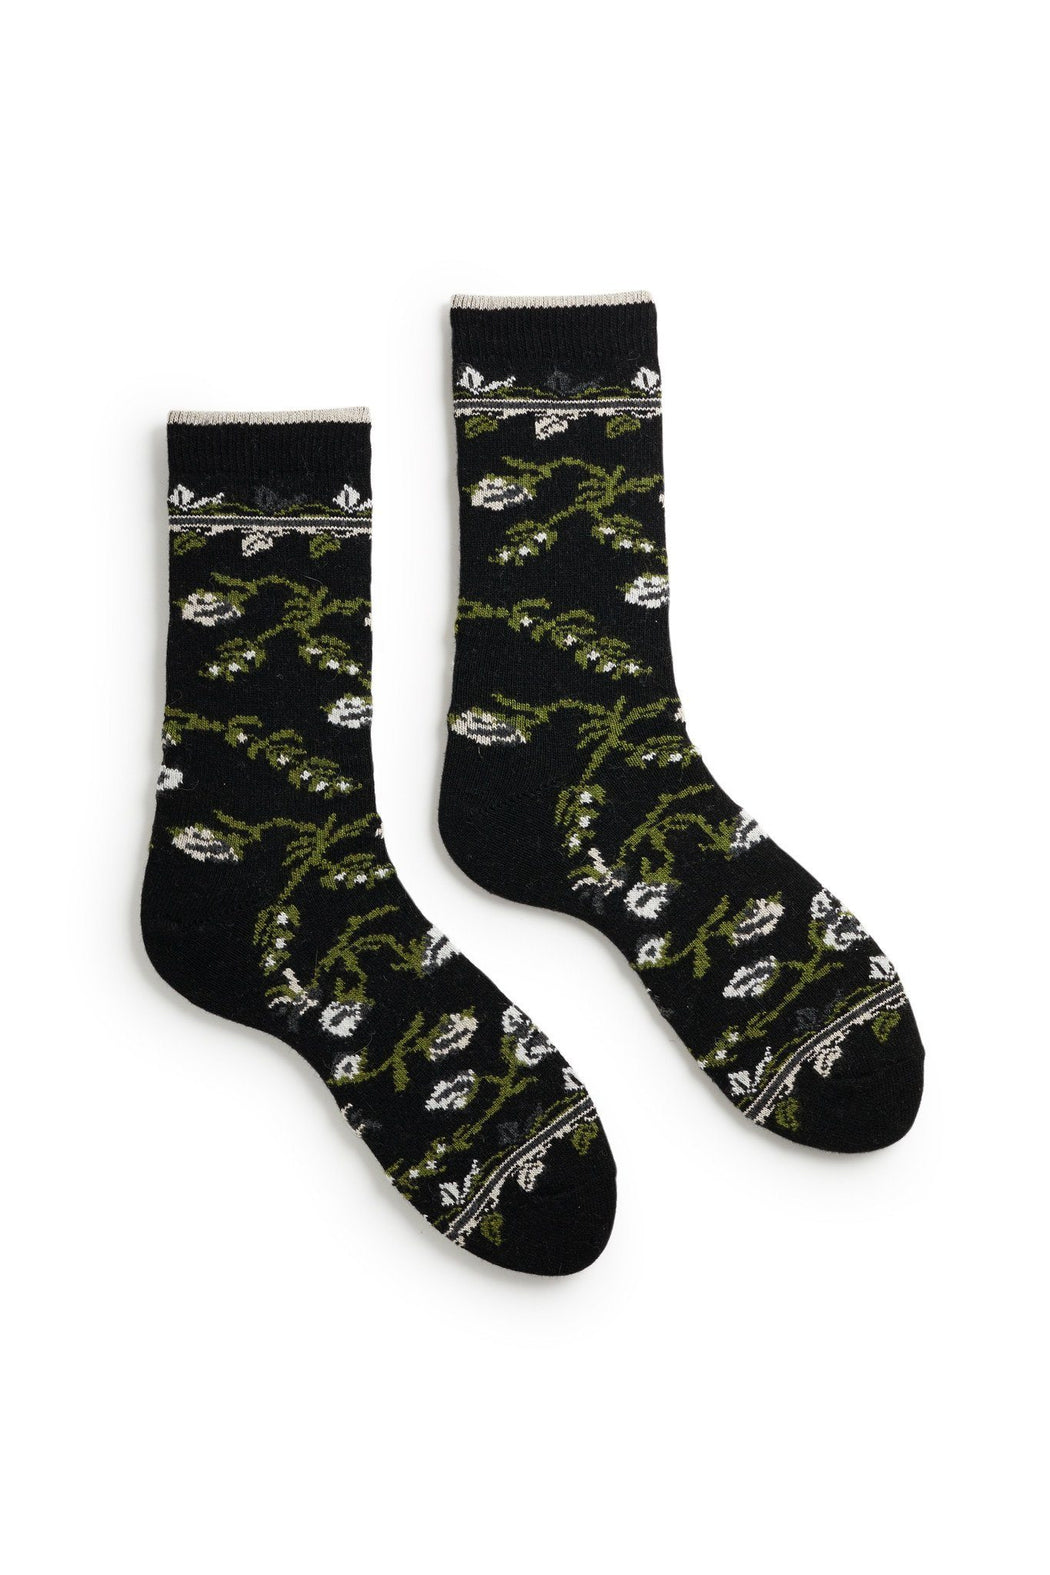 women's black floral wool and cashmere crew length socks